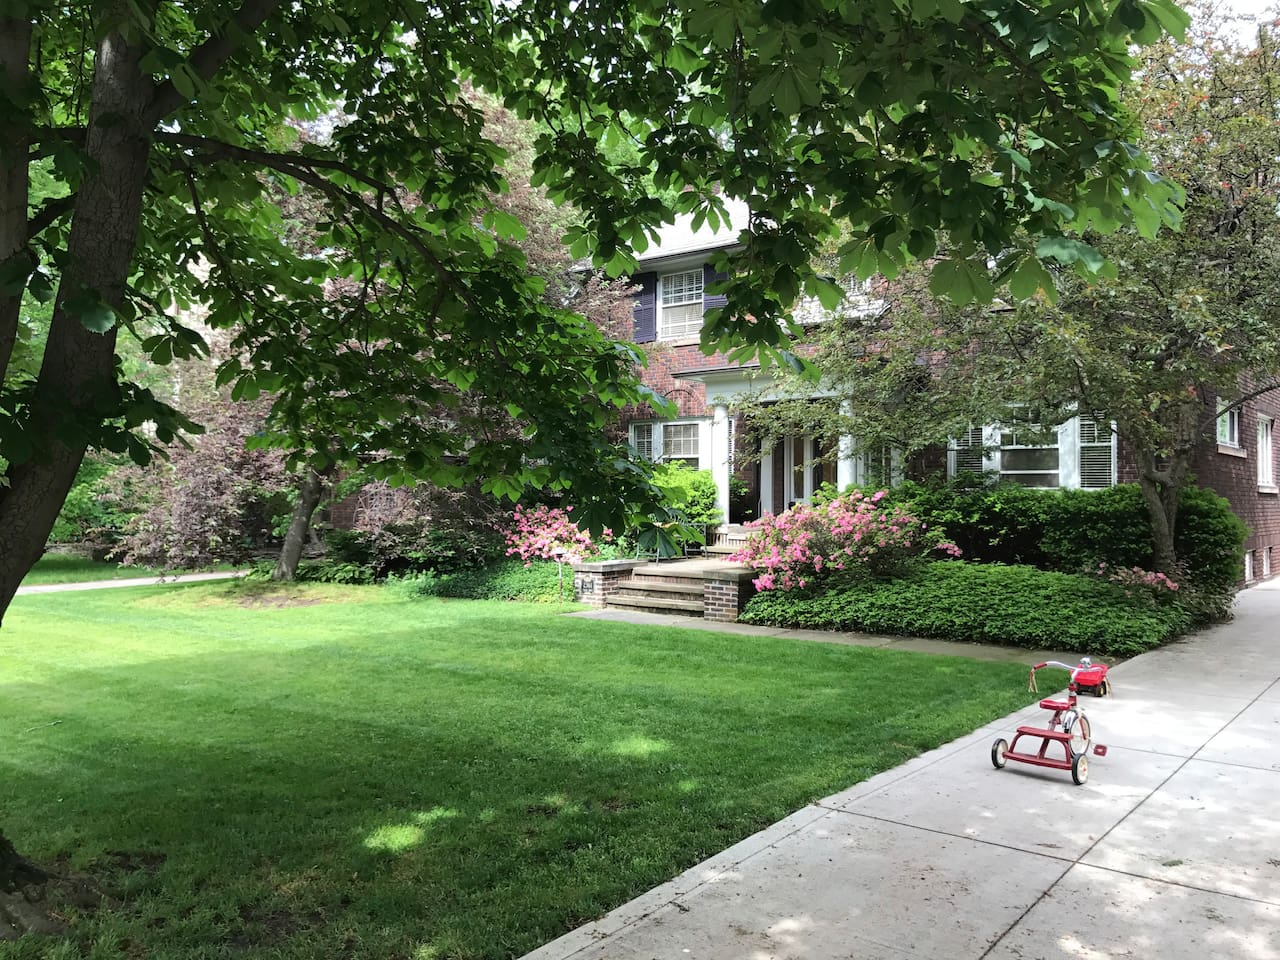 Historic, safe neighborhood close to many of Cleveland's finest attractions